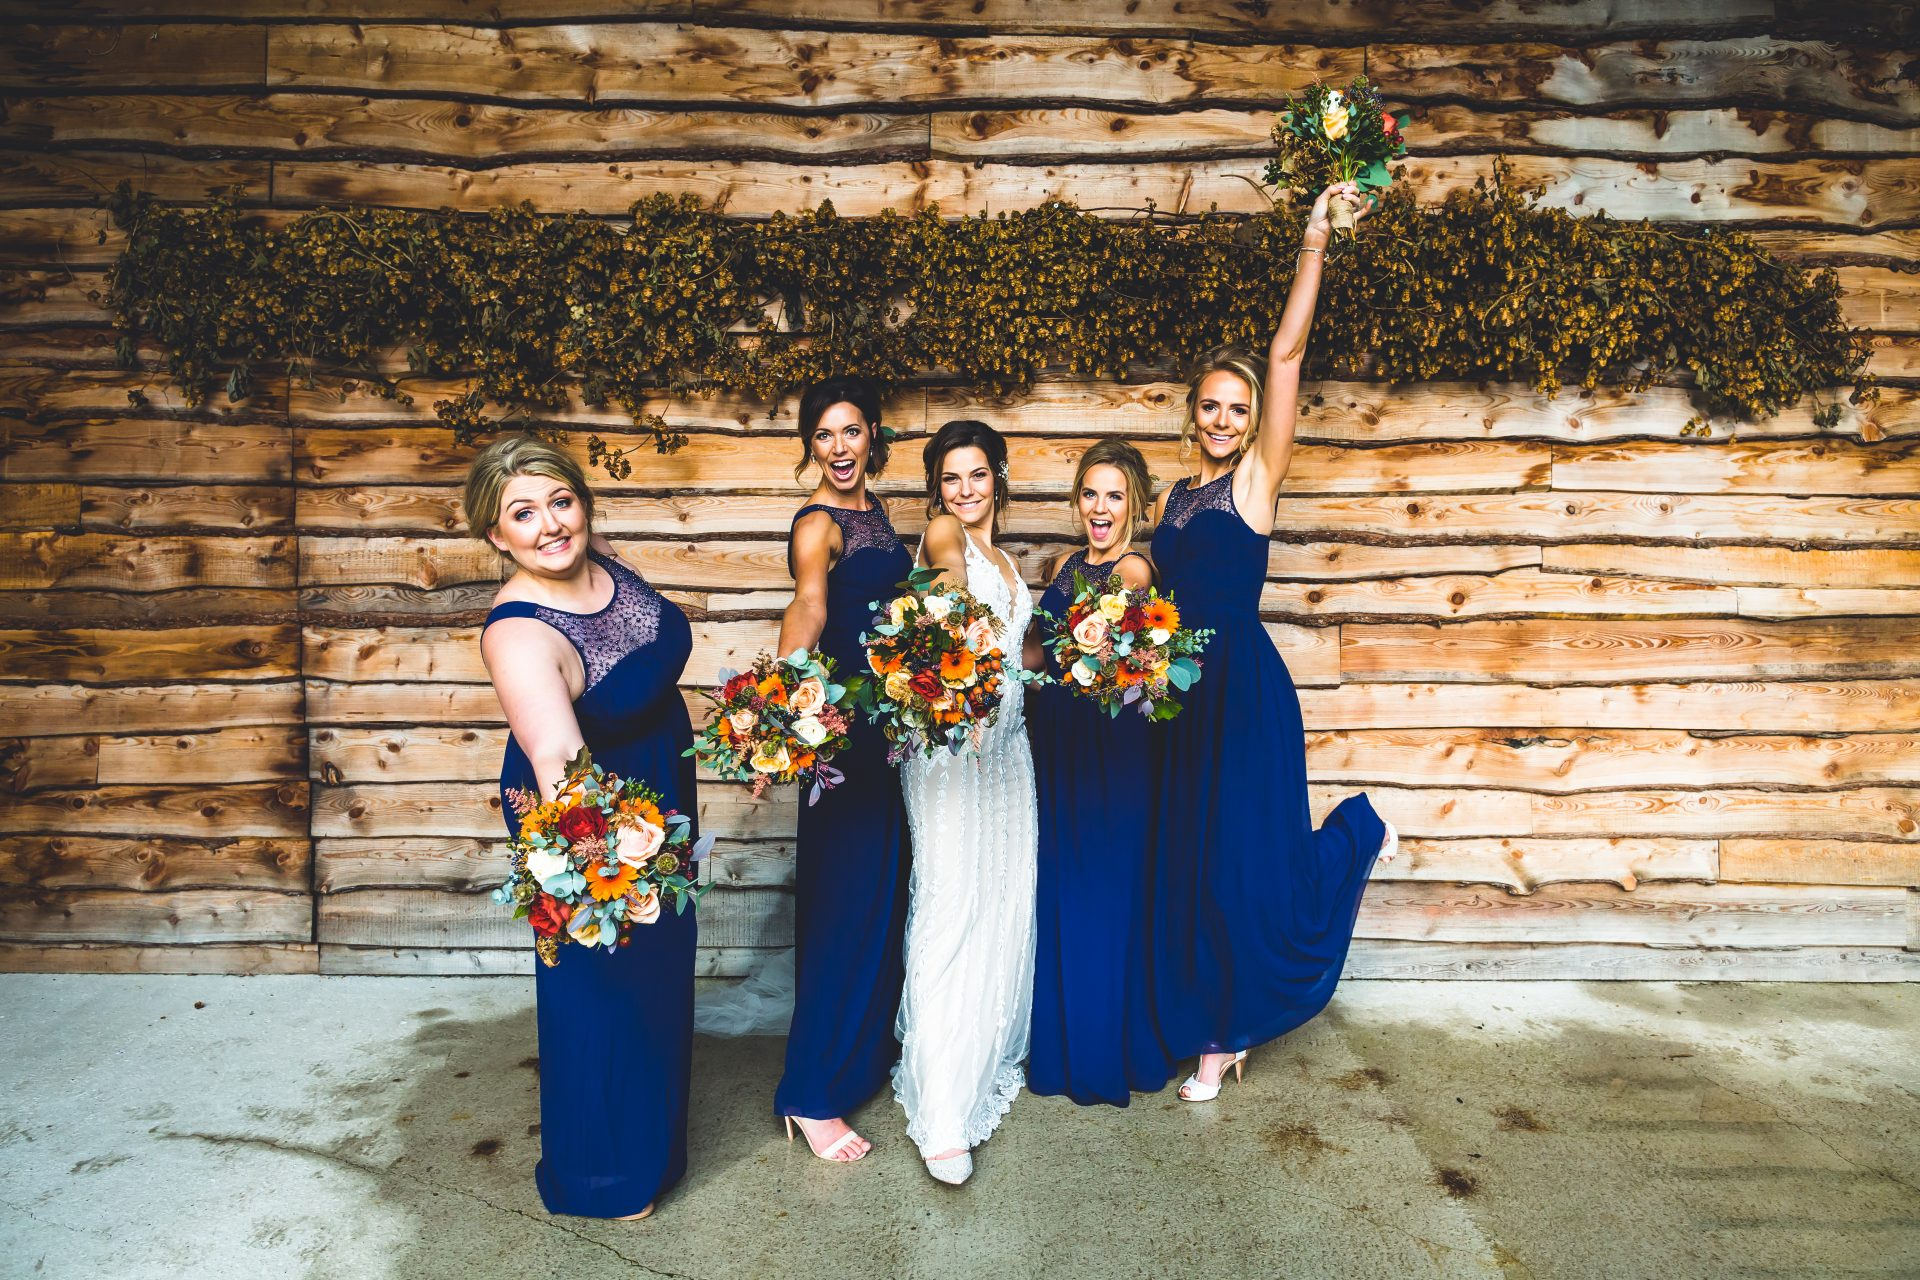 Bridesmaids and Bride free styling the group shot with wedding flowers in the air